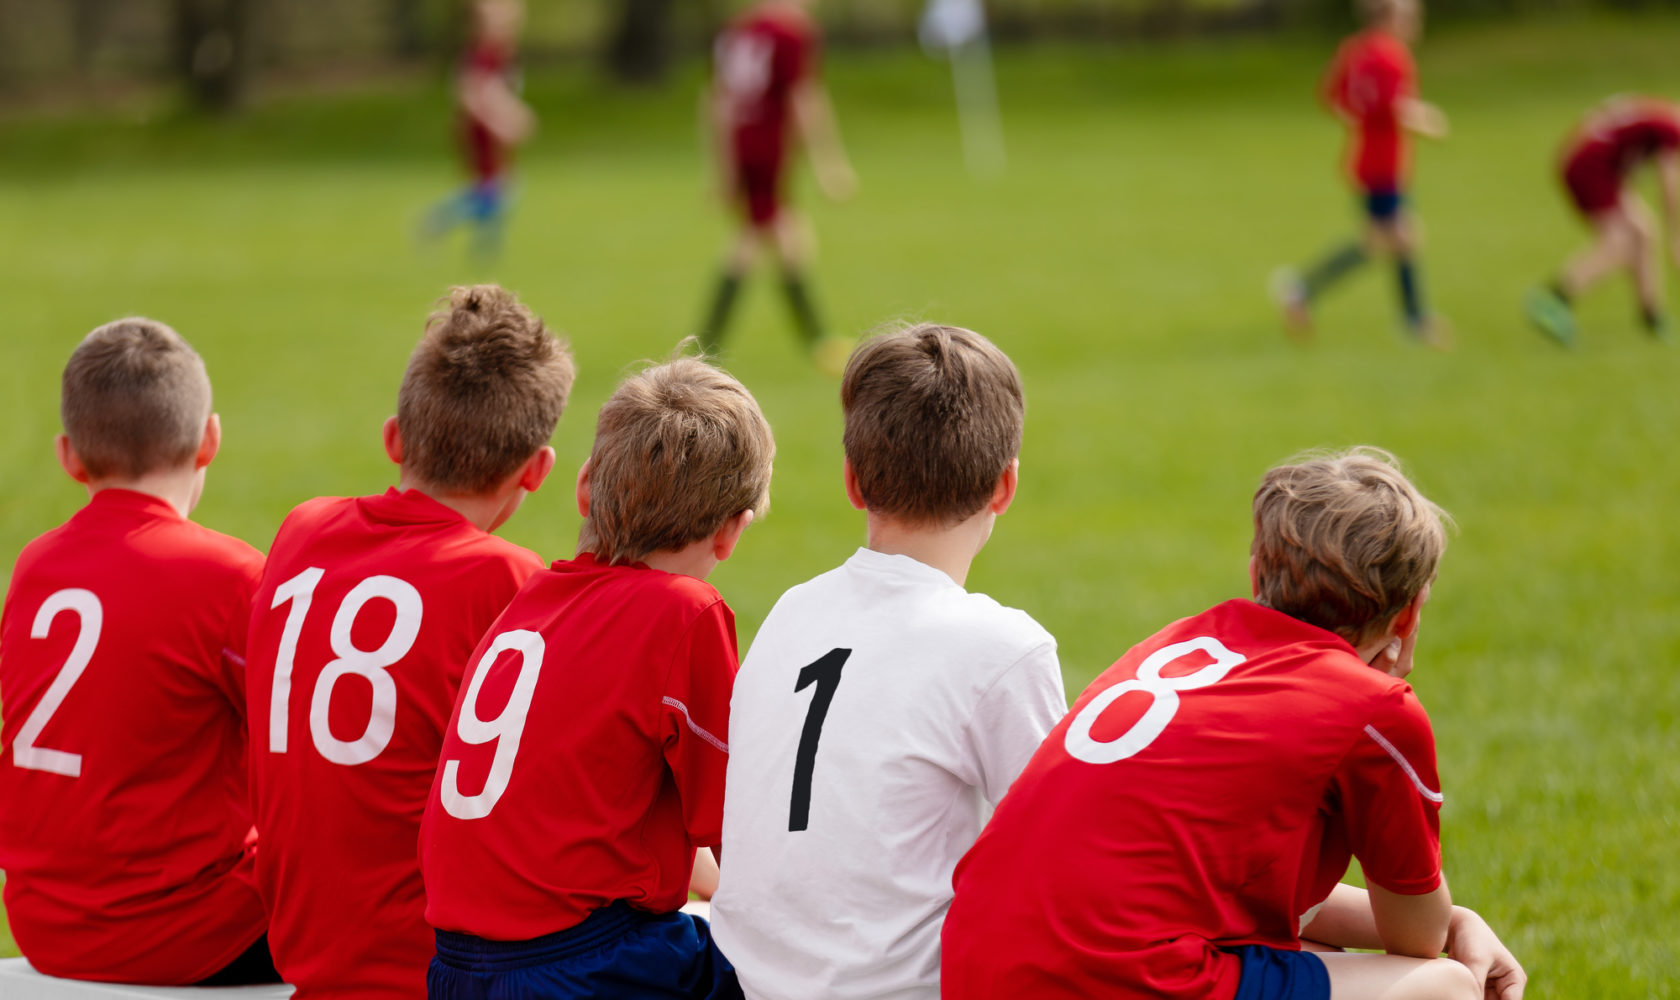 Kids Football Team. Children Football Academy. Substitute Soccer Players Sitting on Bench. Young Boys Playing European Football Game. Soccer Tournament Match for Children